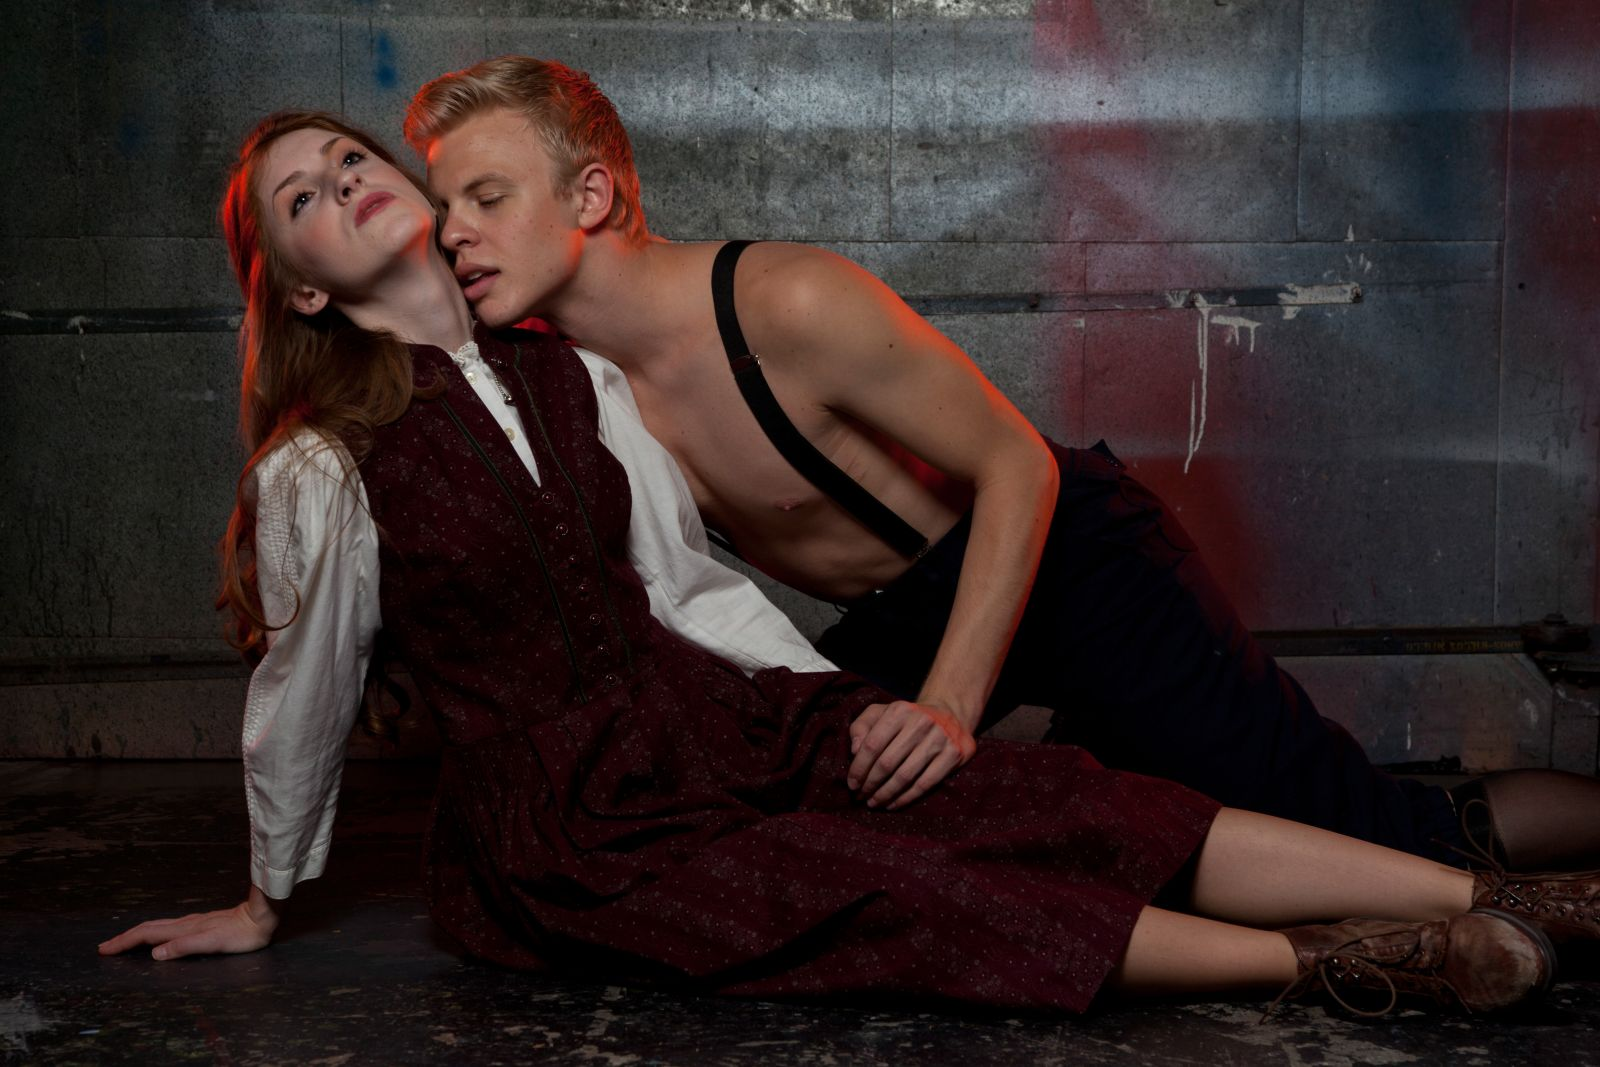 Cooper Hallstrom, 2012, Spring Awakening, Nearly Naked Theatre Co. With Katrin Murdock. (Photo by Jerry O'Connor)